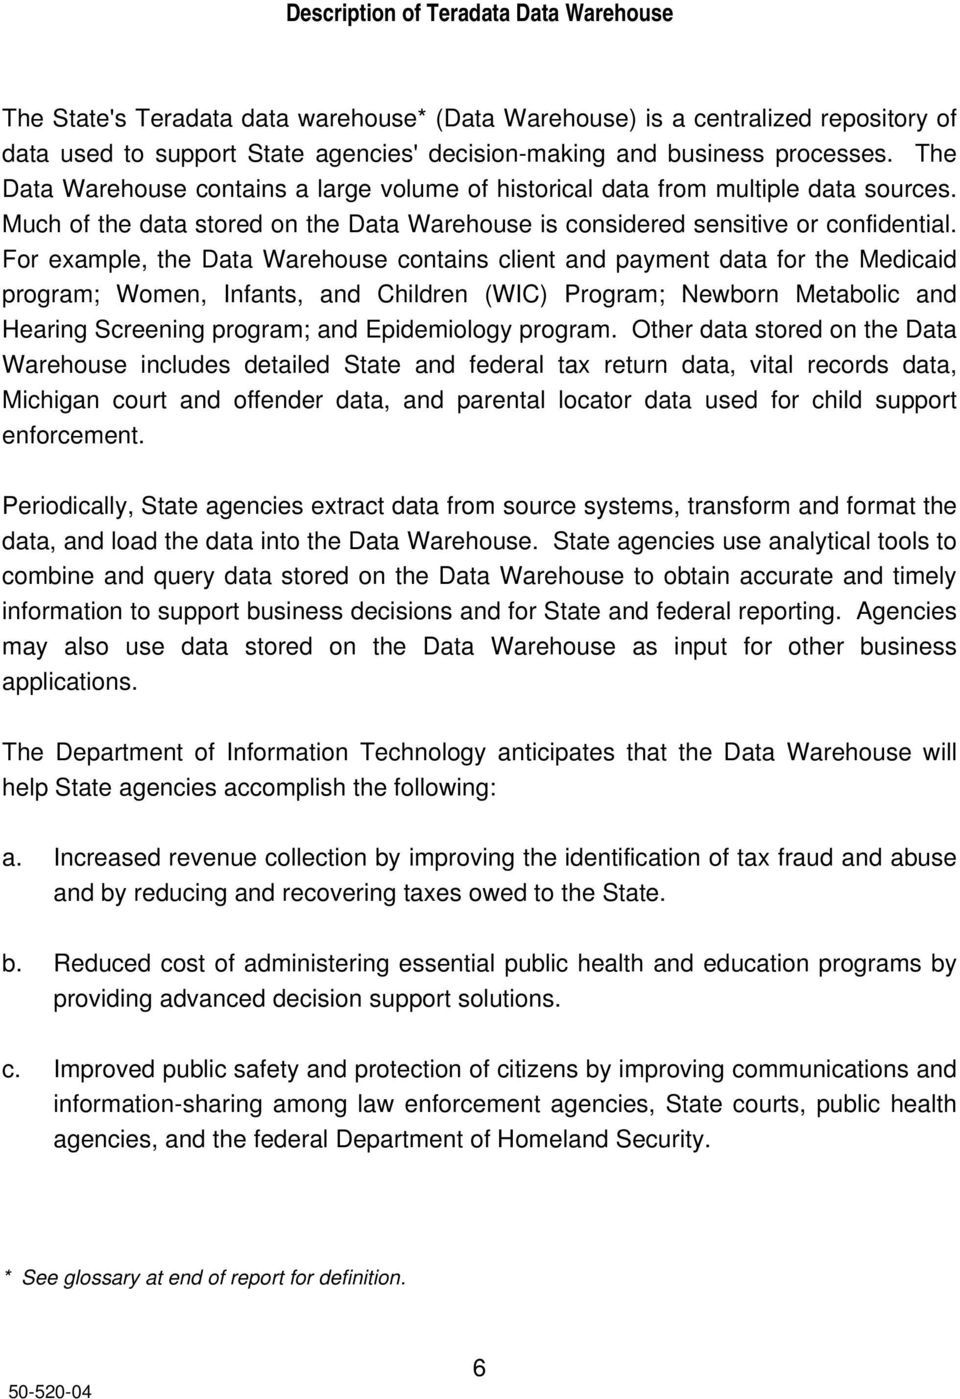 For example, the Data Warehouse contains client and payment data for the Medicaid program; Women, Infants, and Children (WIC) Program; Newborn Metabolic and Hearing Screening program; and